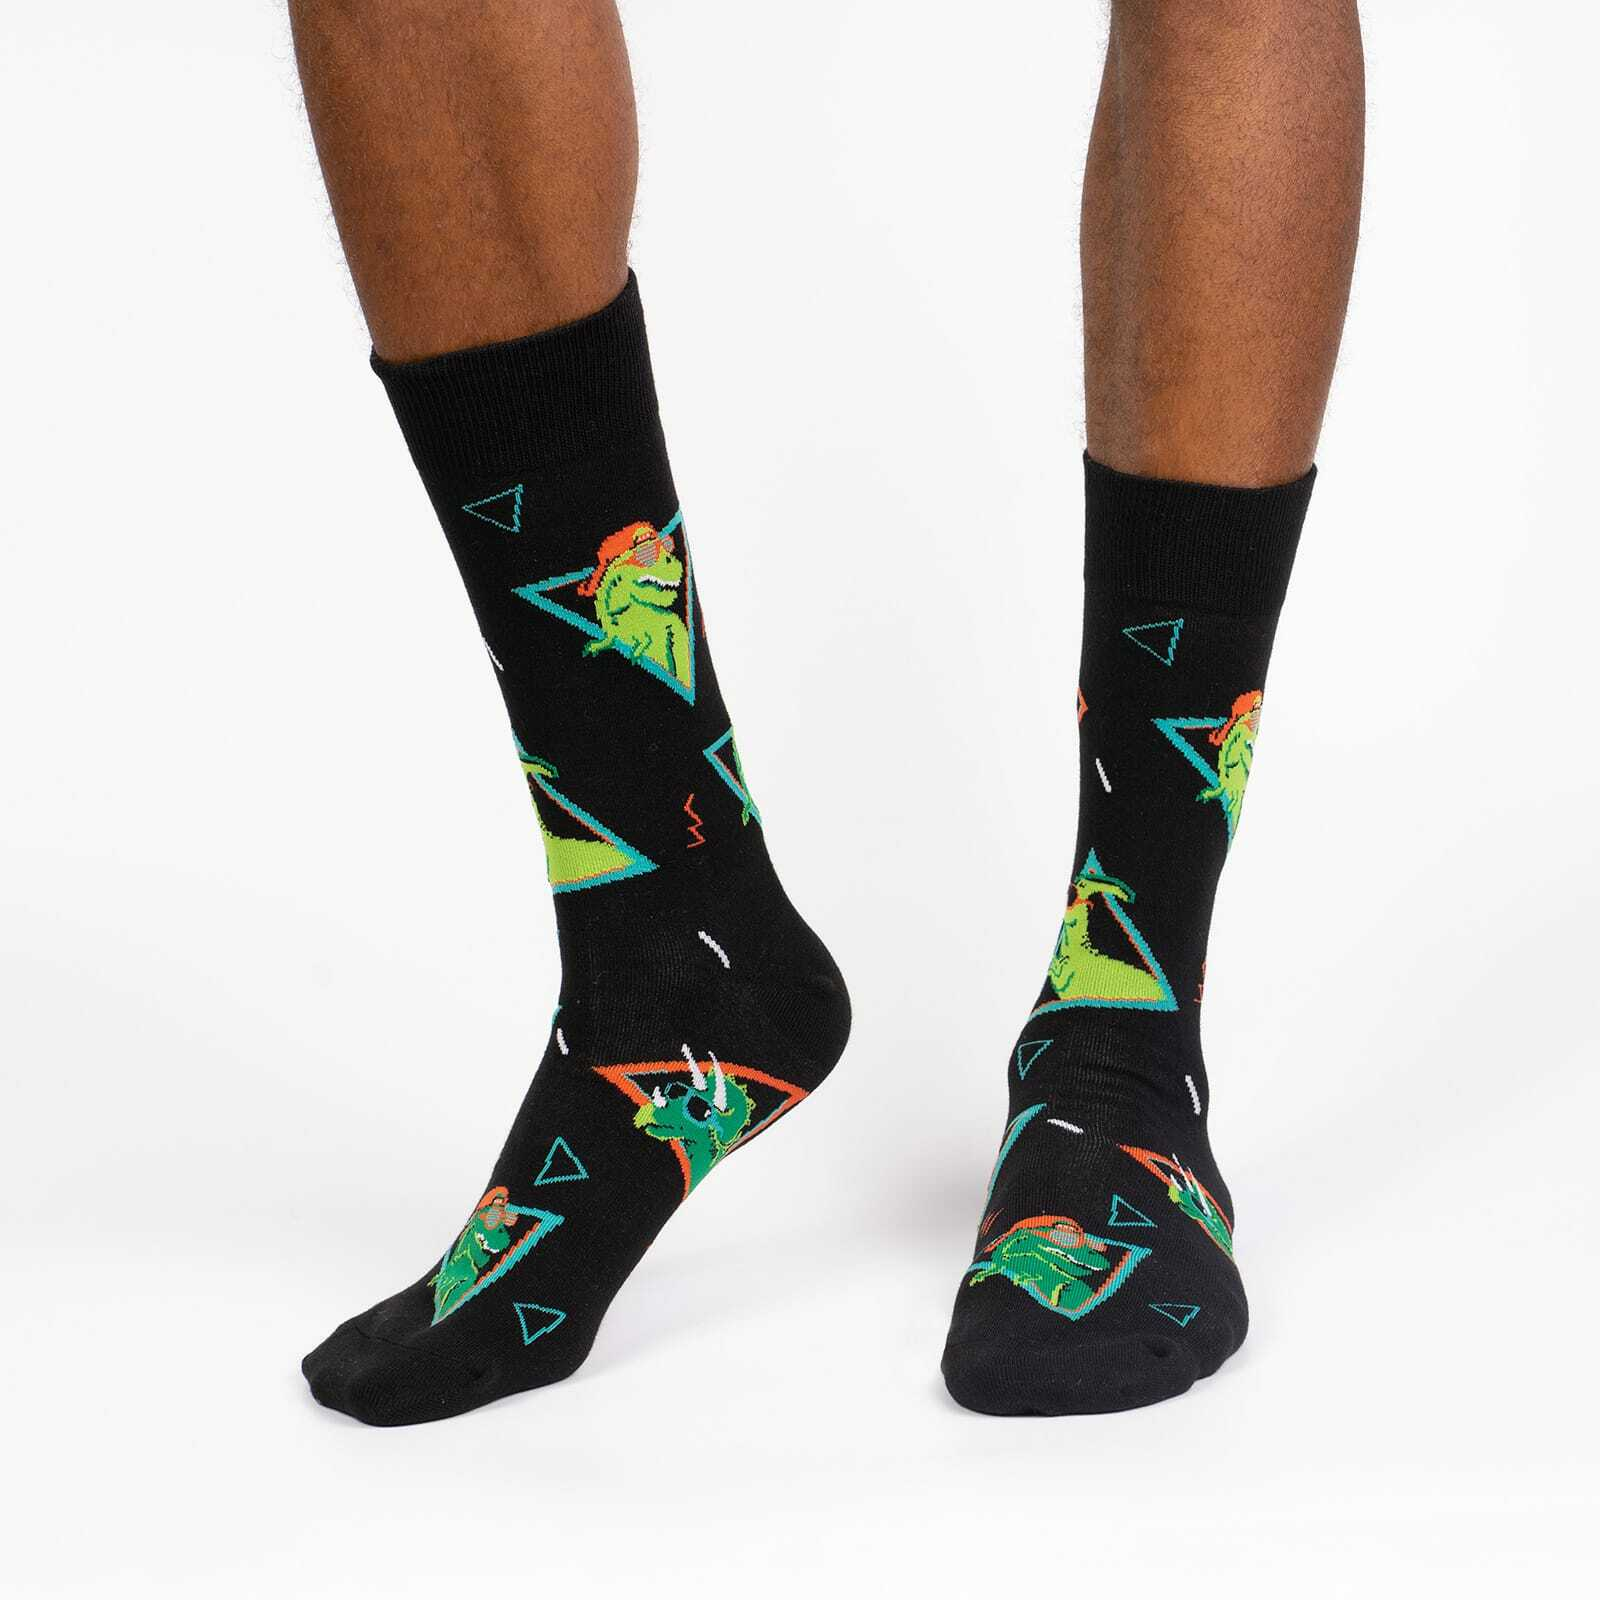 Jurassic Party - Dinosaur Fun Retro Crew Socks Black - Men's in Black